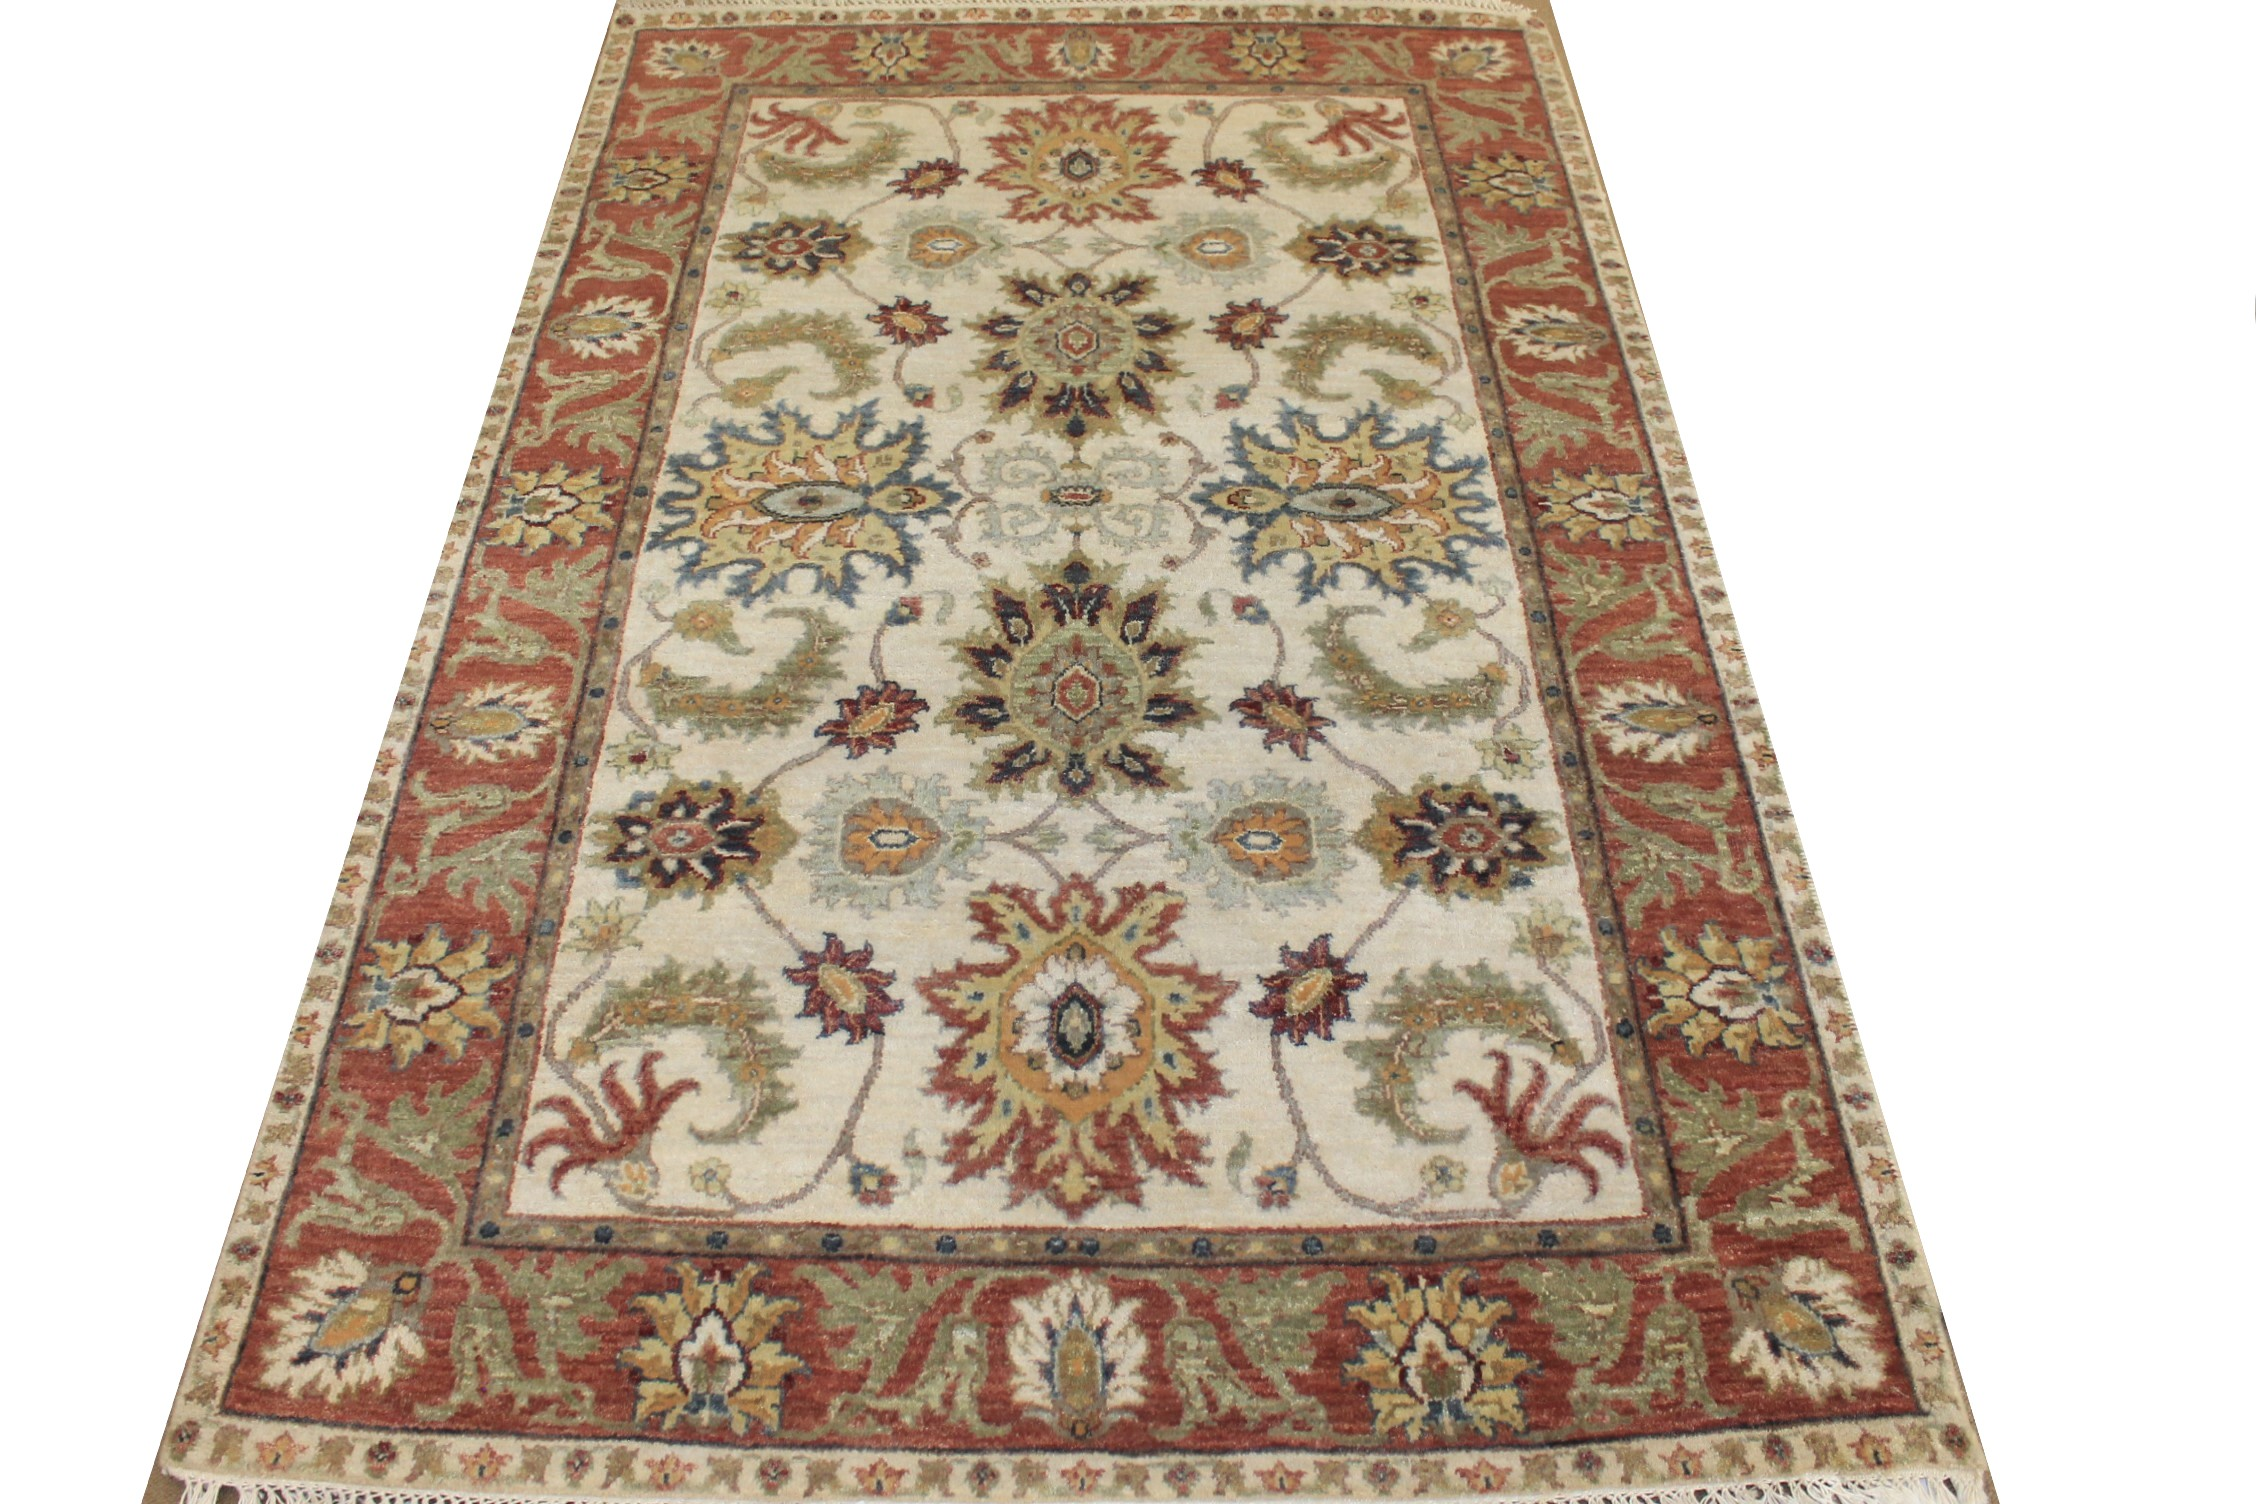 4x6 Traditional Hand Knotted Wool Area Rug - MR024769